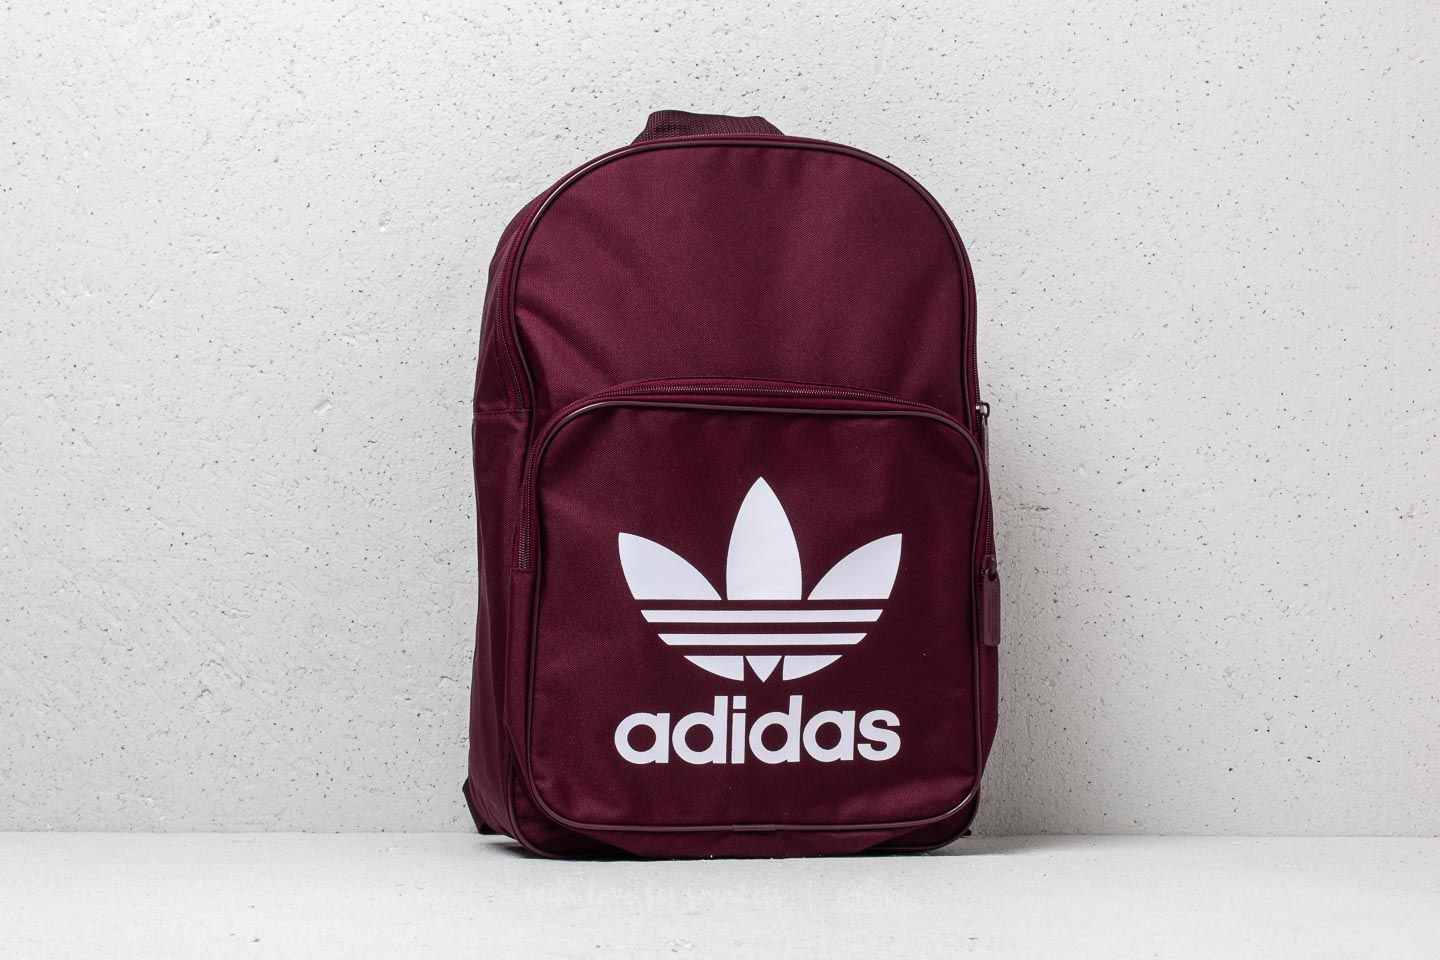 9b16a1bf2df7 adidas Classic Trefoil Backpack Maroon